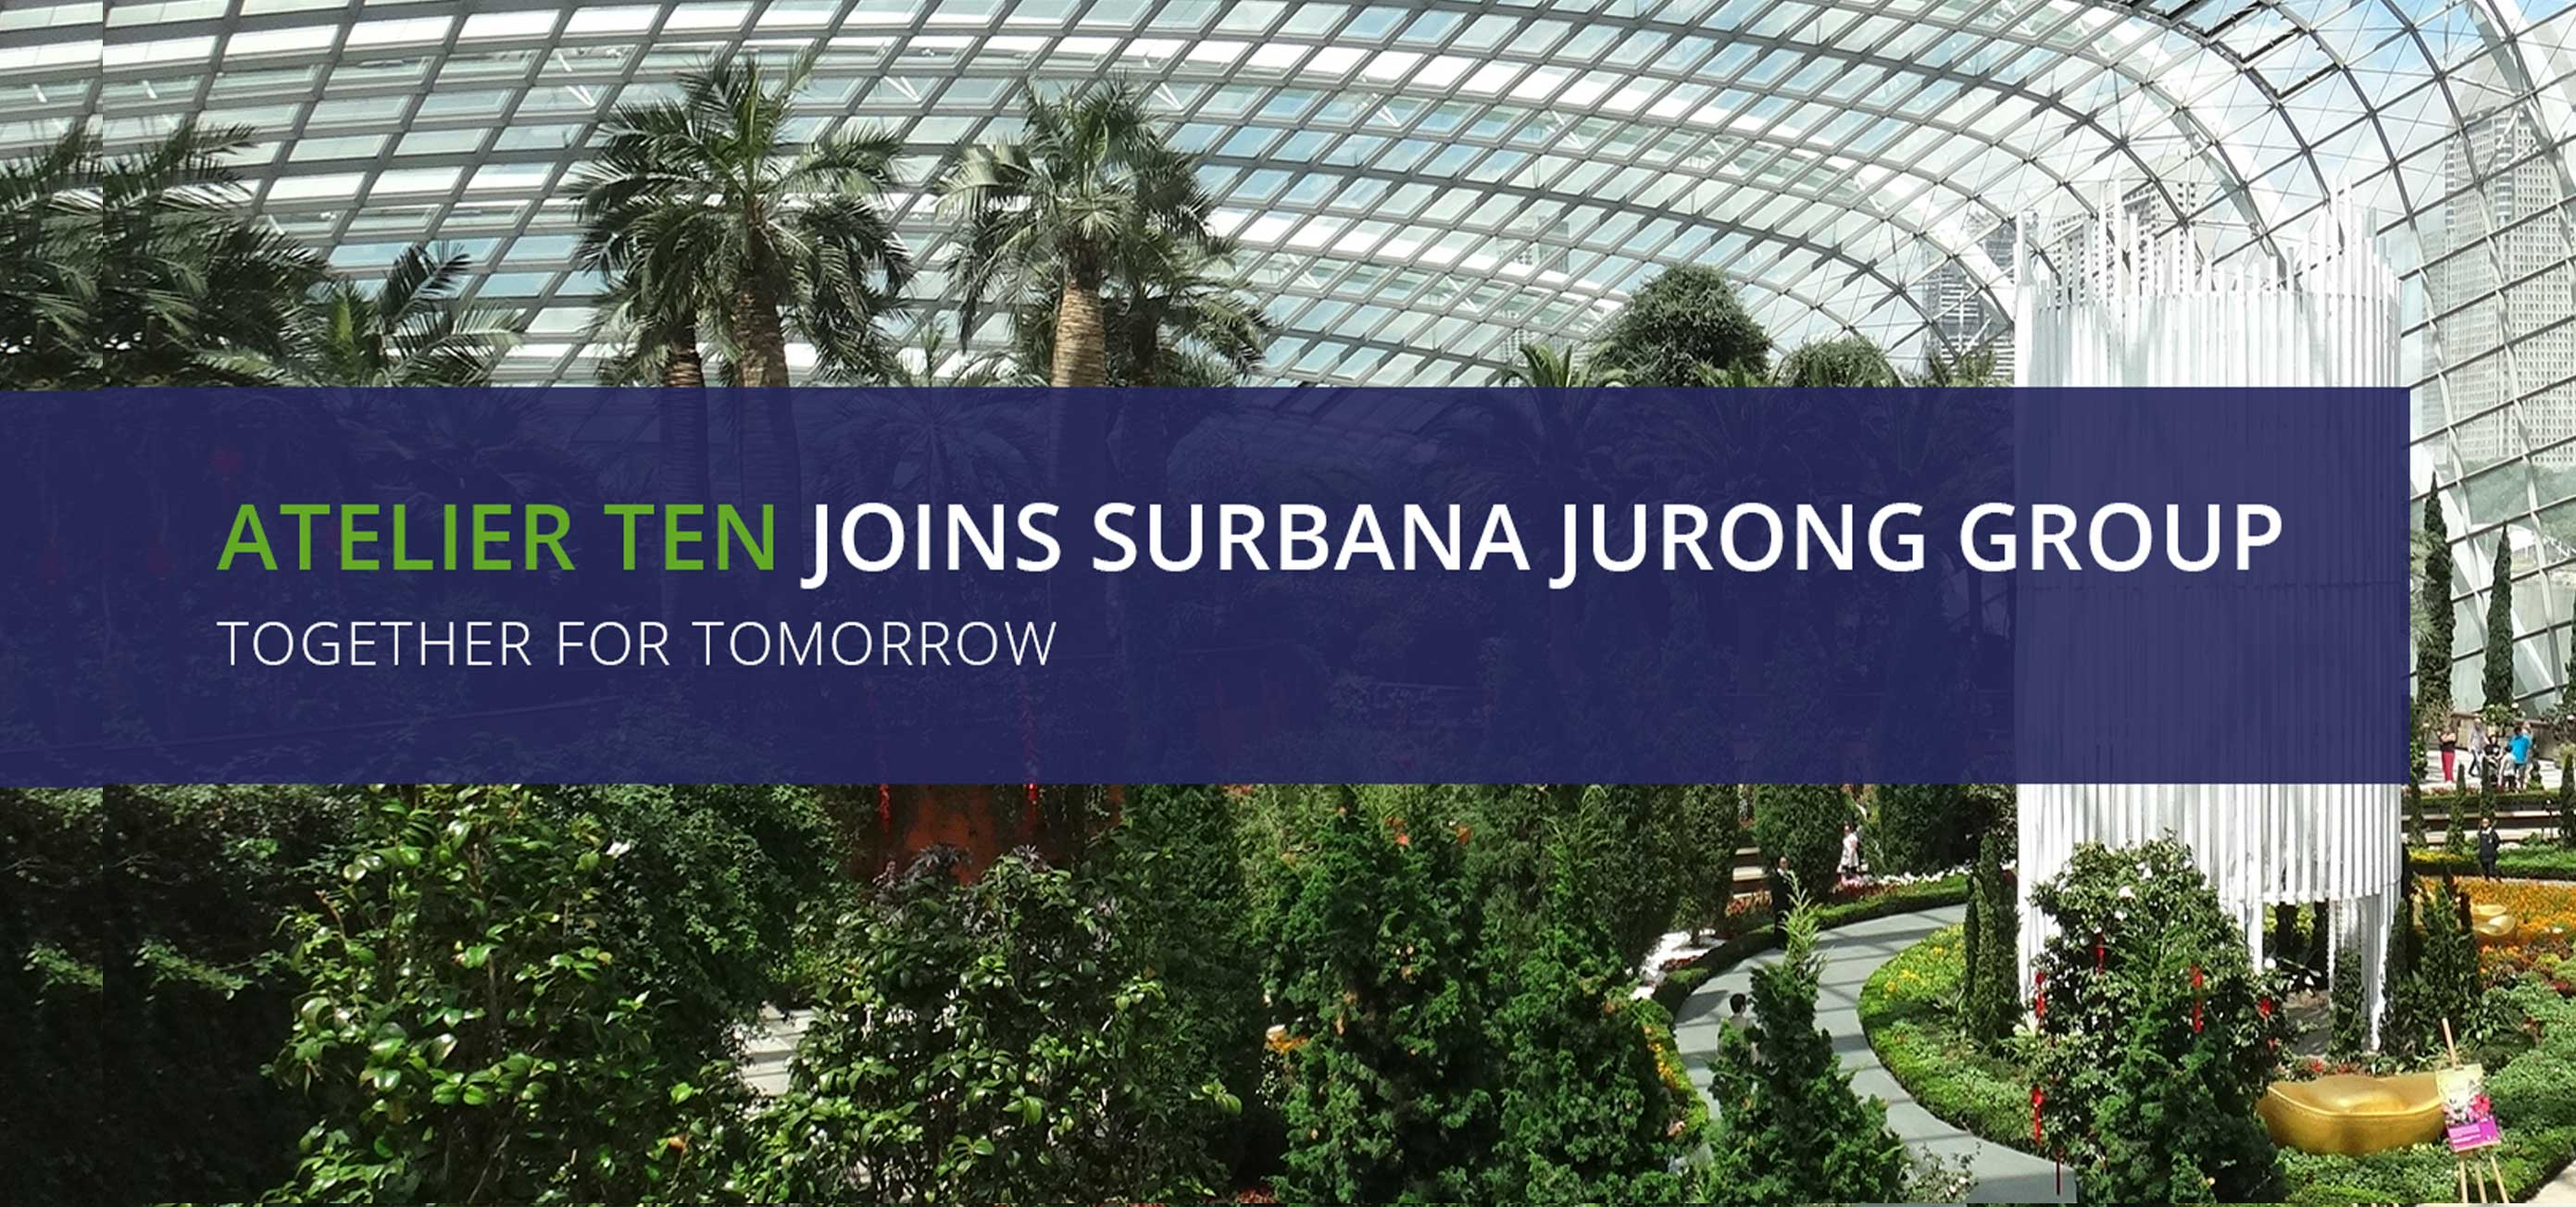 https://surbanajurong.com/resources/news/environmental-design-consultancy-atelier-ten-joins-the-surbana-jurong-group/